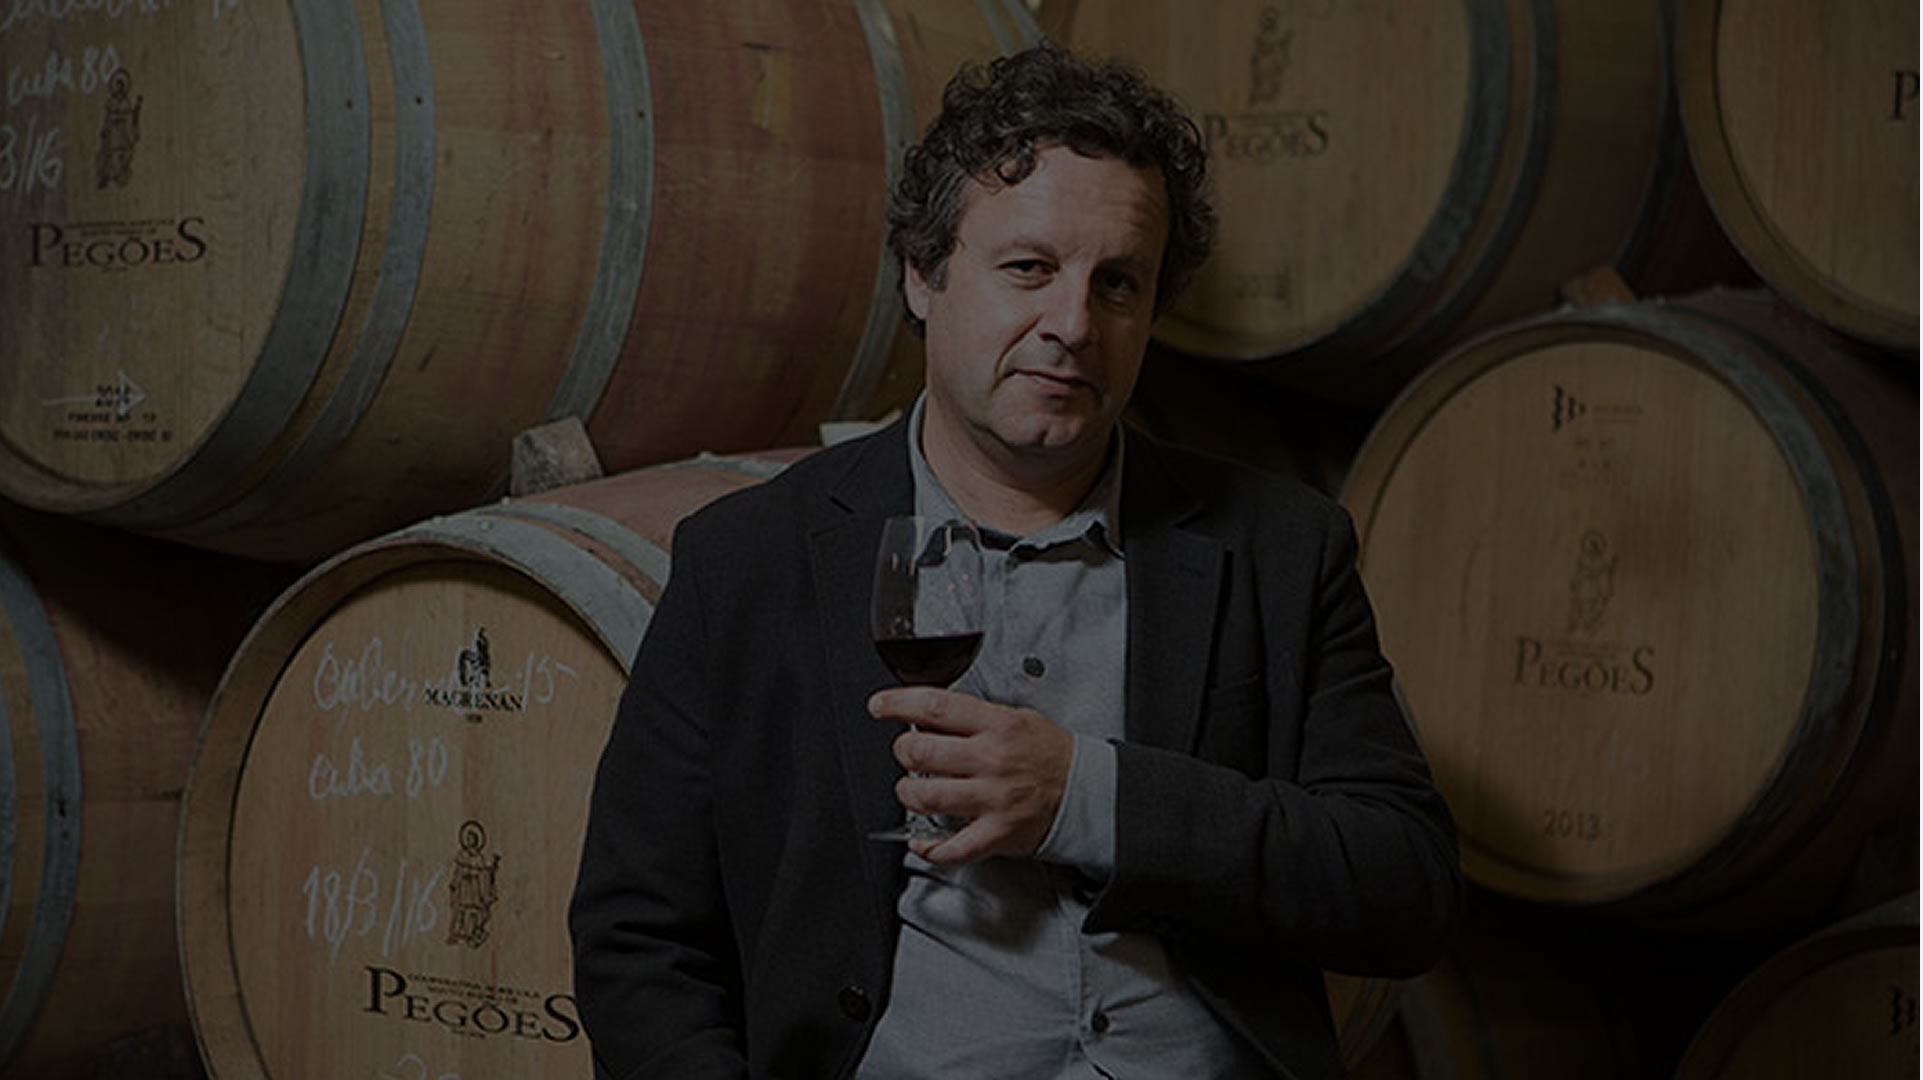 Jaime Quendera, son and grandson of producers, winemaker of the new generation...